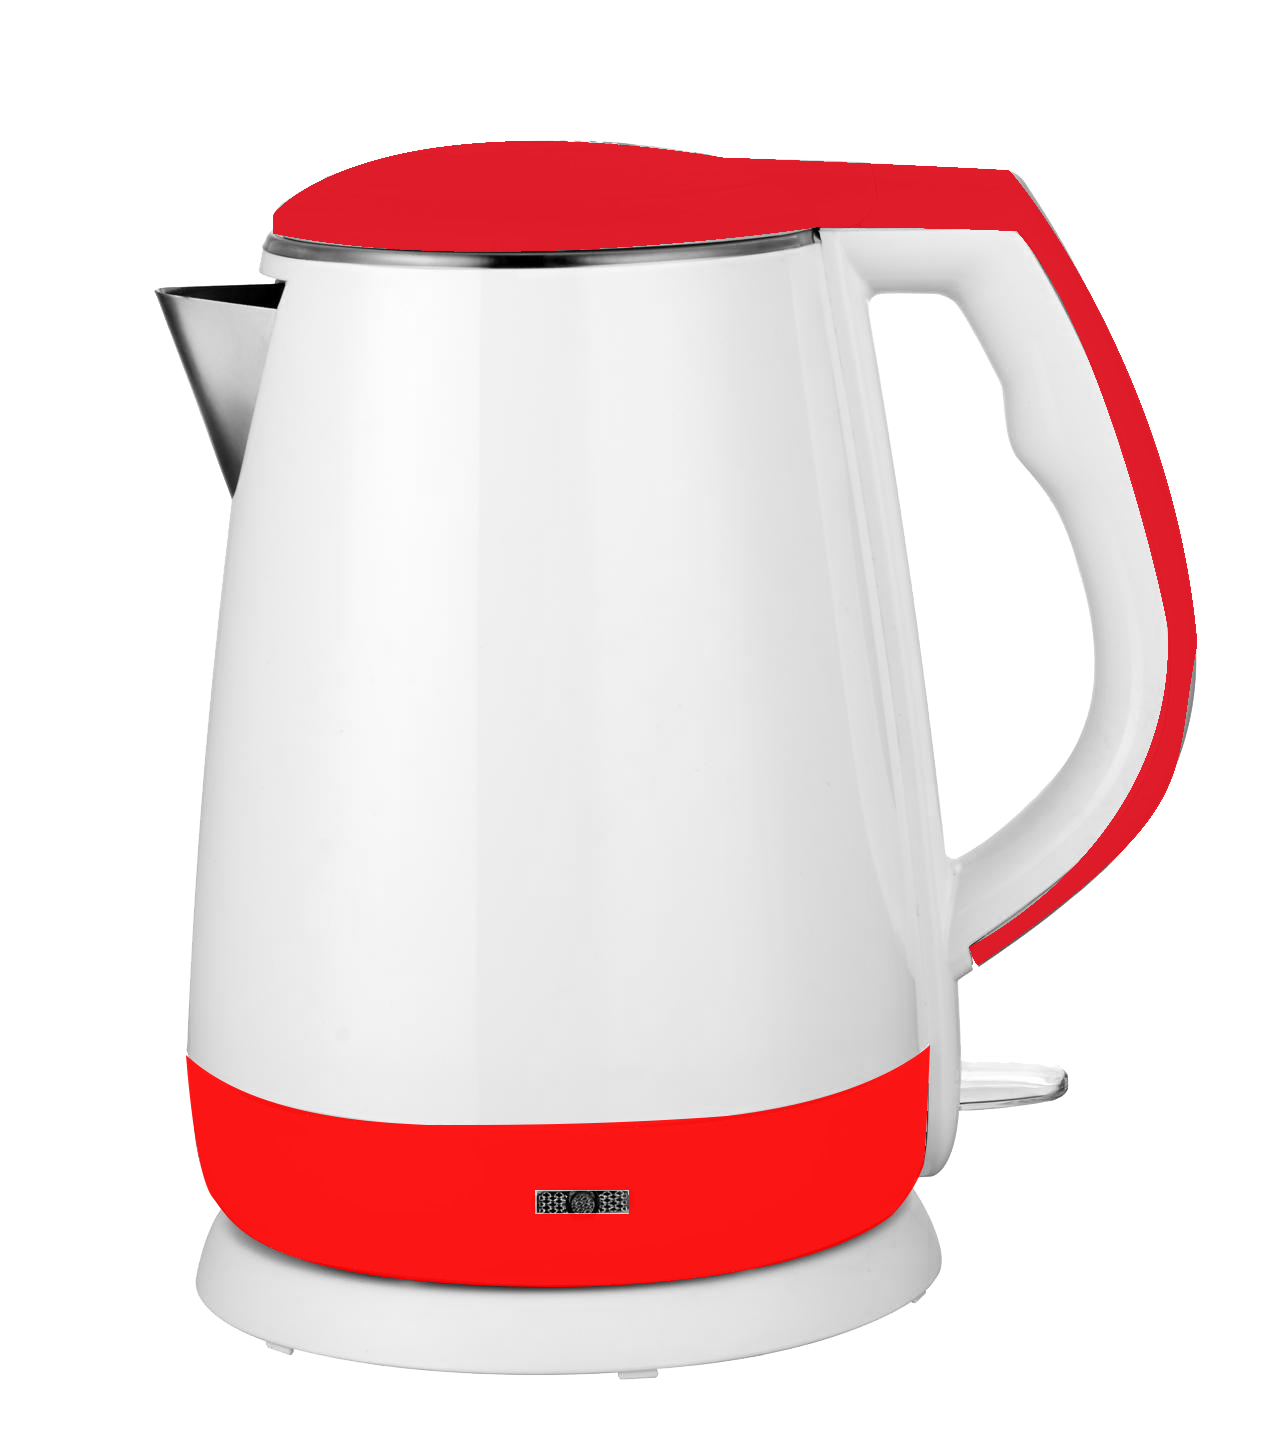 1.5L indoor used electric kettle